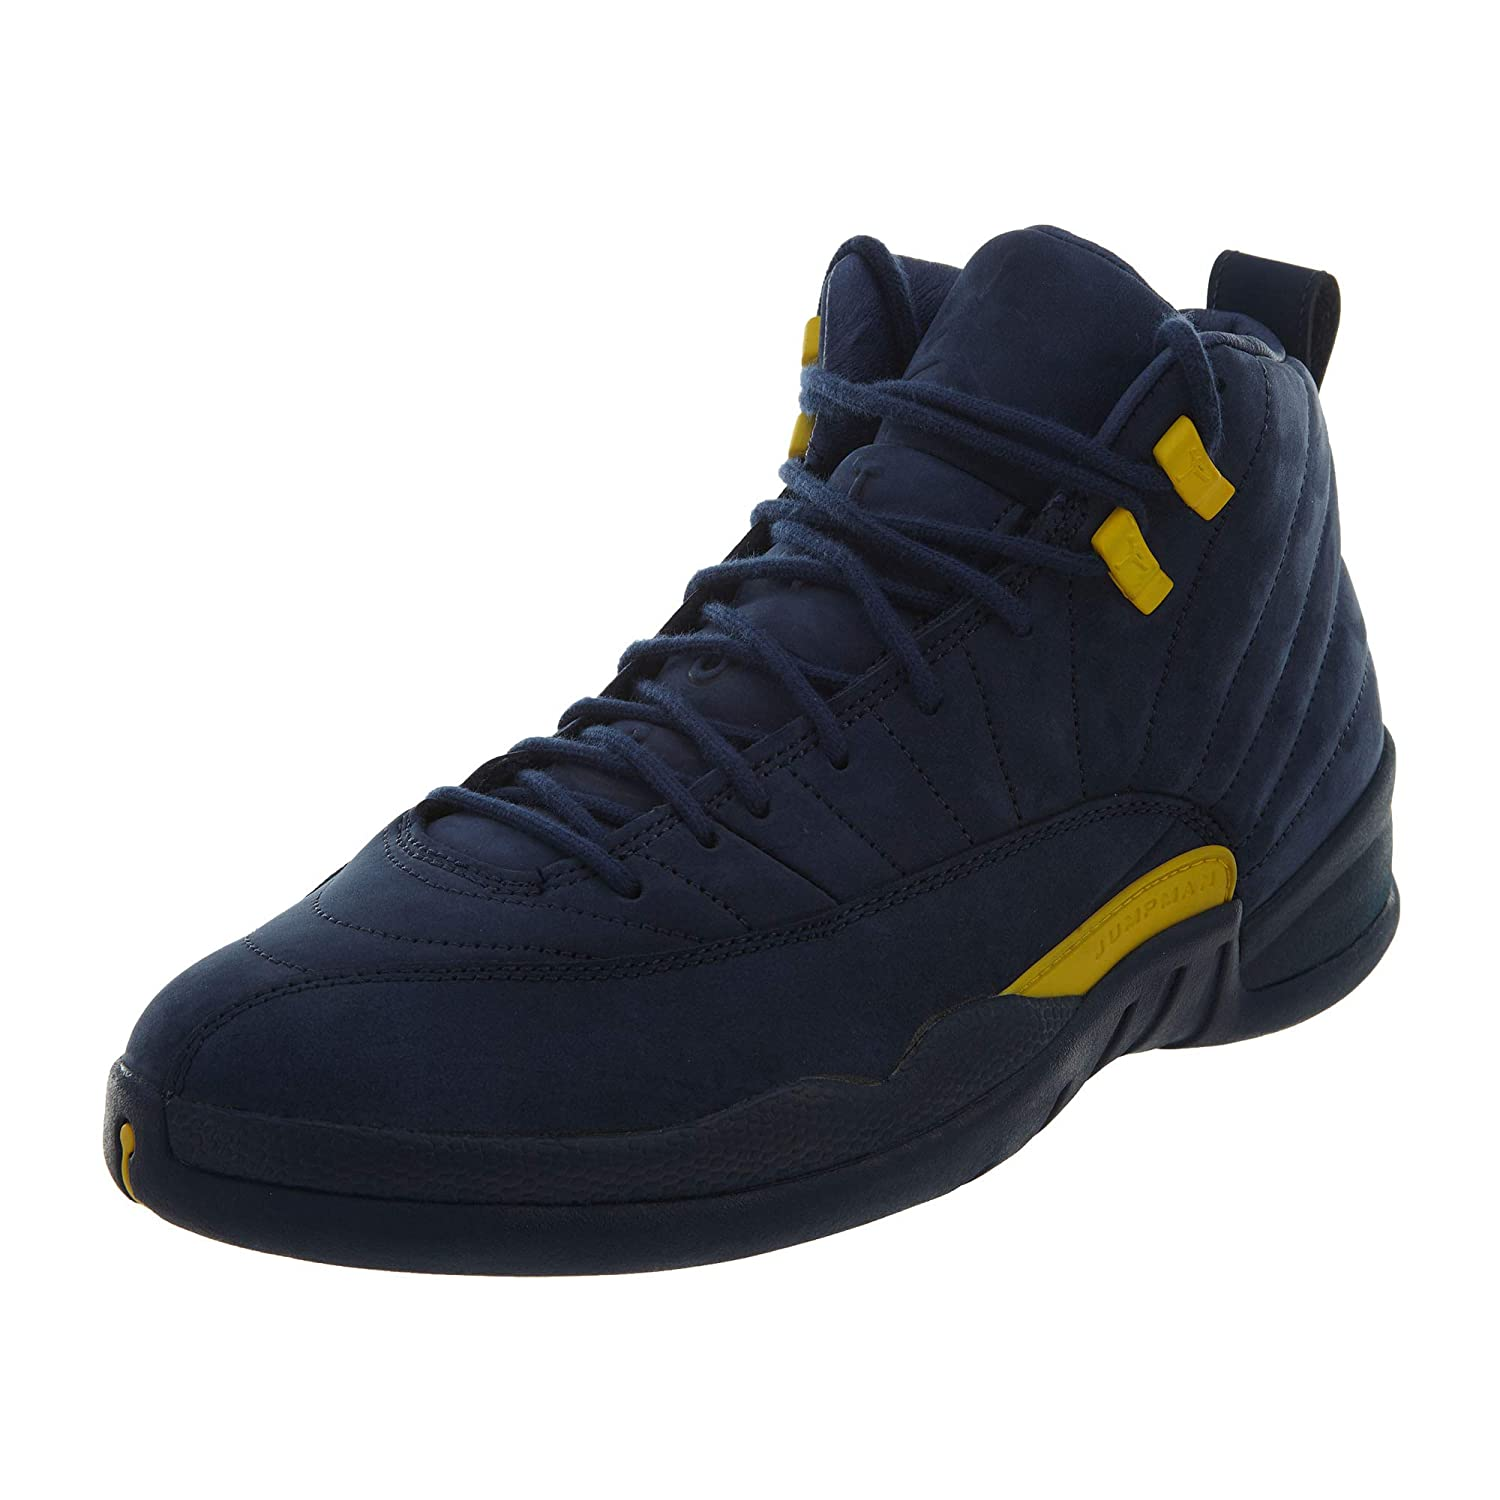 finest selection 110a4 06a06 Amazon.com   NIKE Air Jordan 12 Retro Michigan Nrg Mens Style  BQ3180-407  Size  10   Basketball